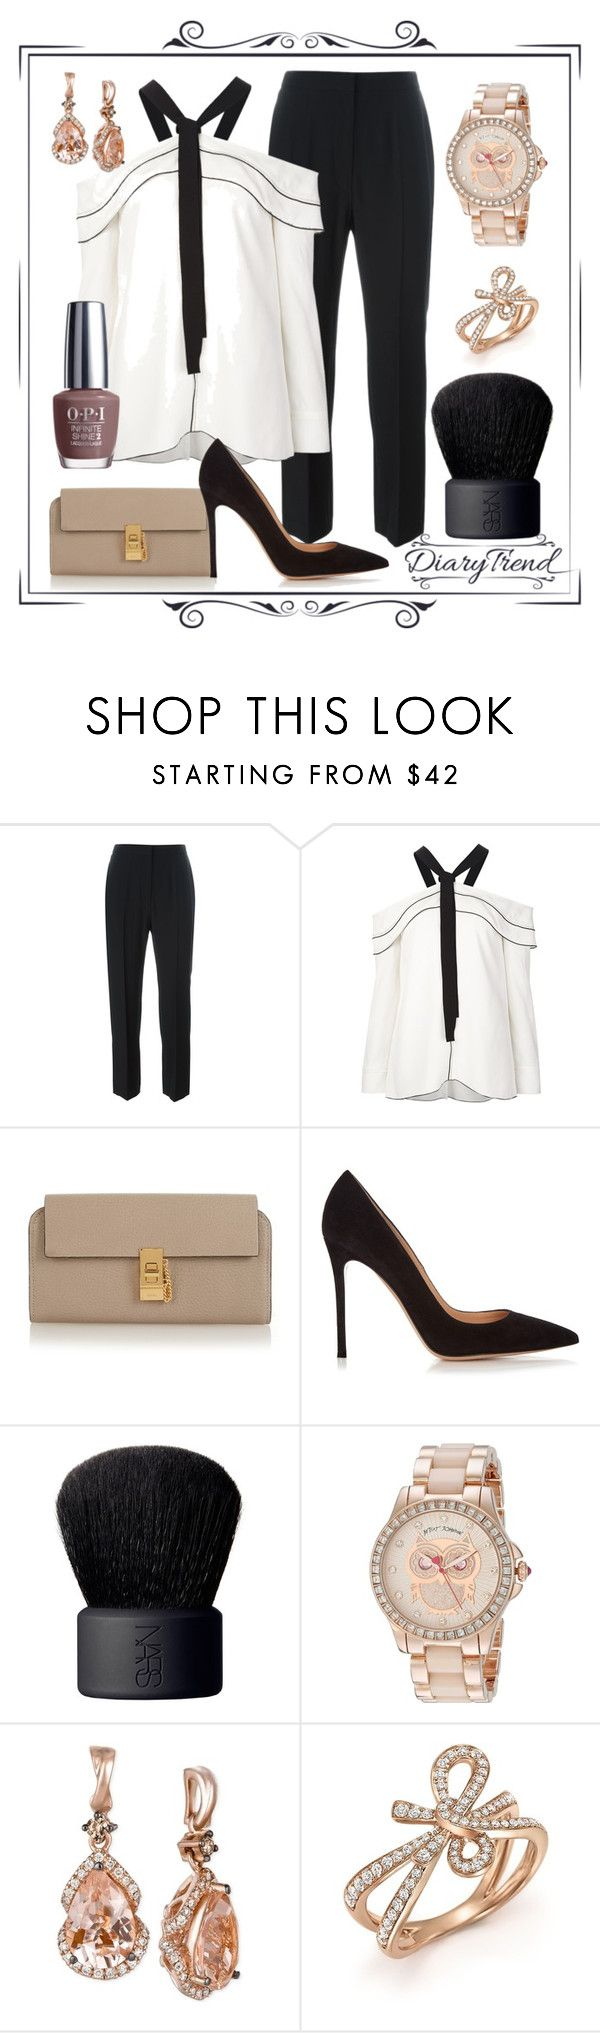 """С плеч долой"" by dairy-trend ❤ liked on Polyvore featuring Alexander McQueen, Proenza Schouler, Chloé, Gianvito Rossi, NARS Cosmetics, Betsey Johnson, LE VIAN and Bloomingdale's"